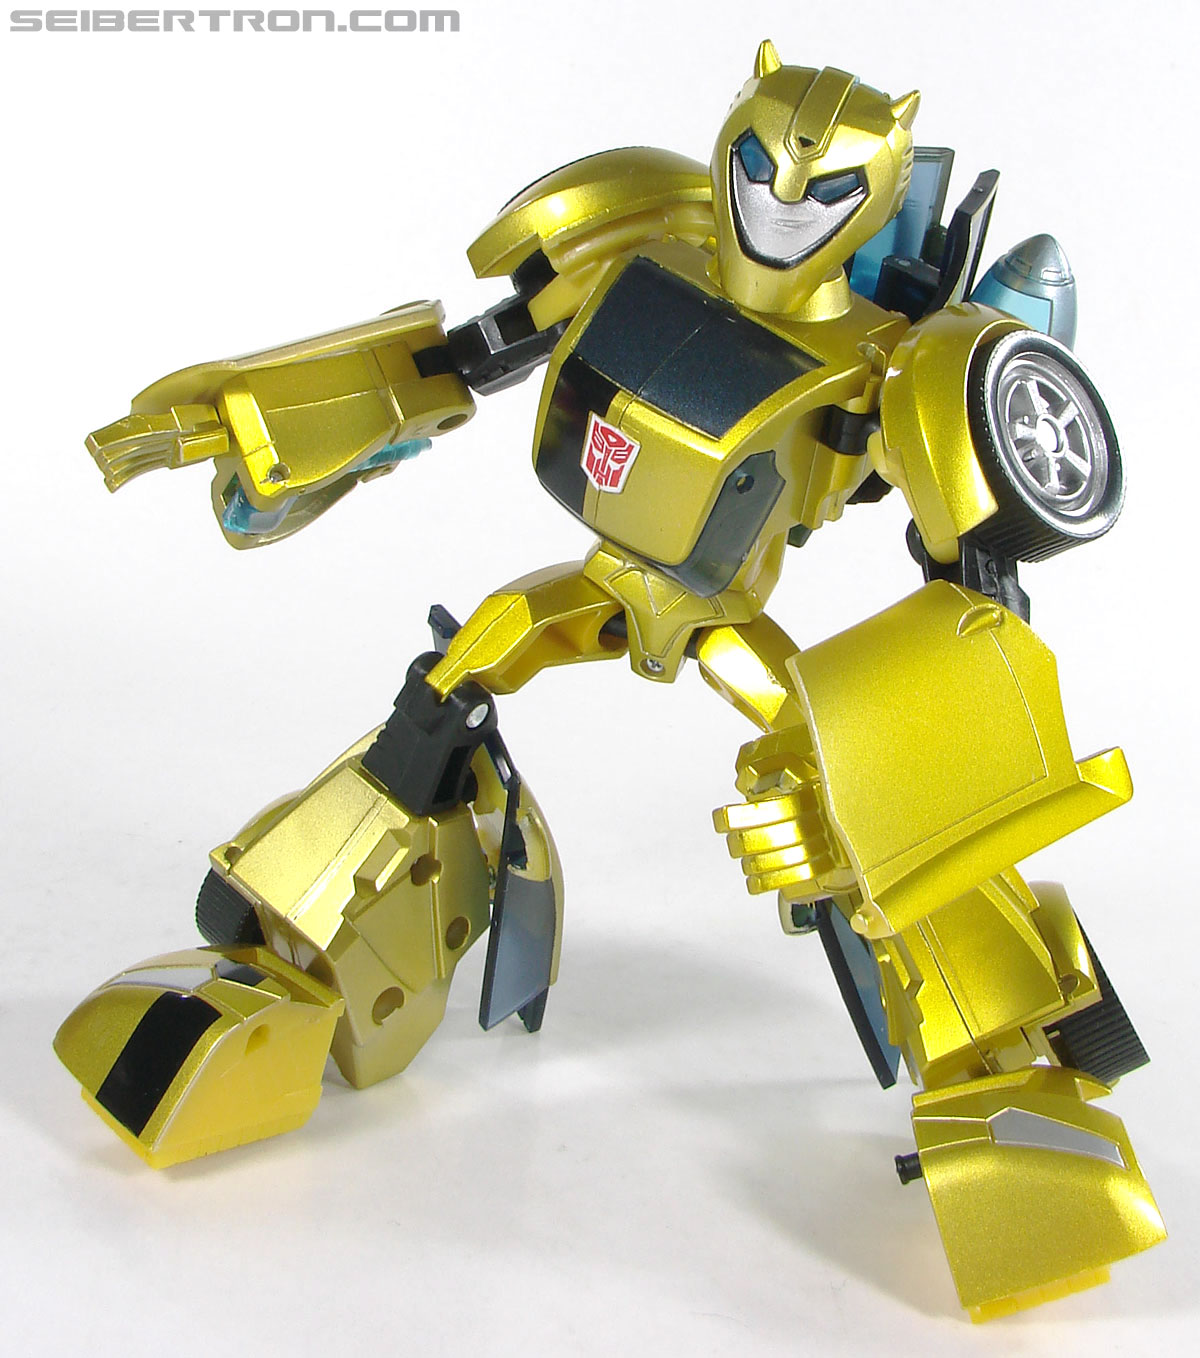 Transformers Animated Bumblebee (Image #65 of 115)